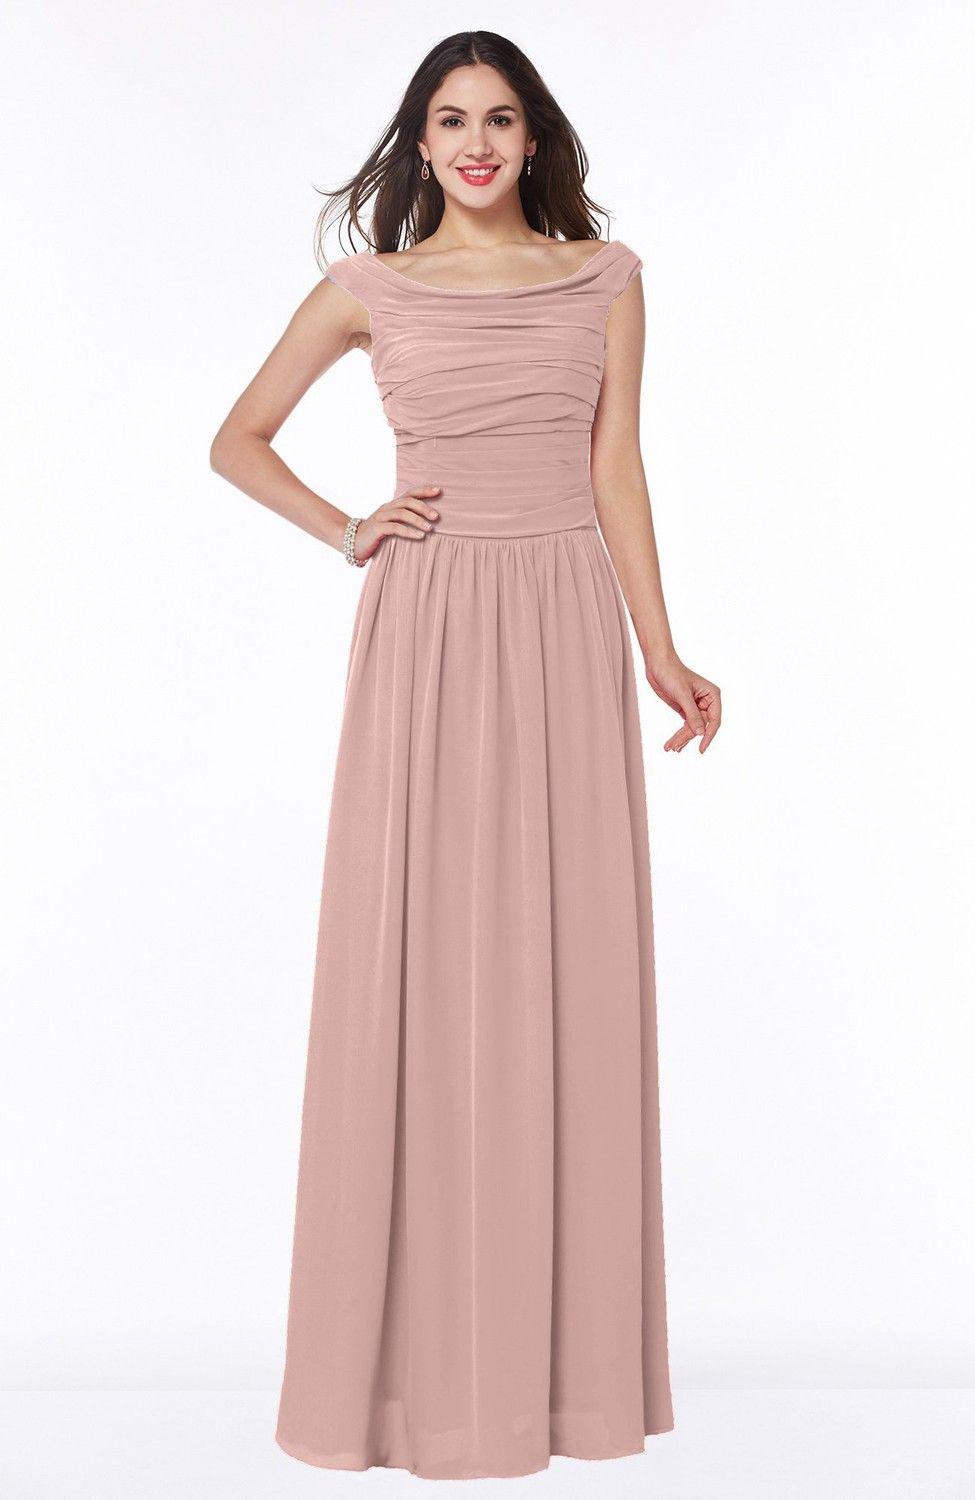 Dusty Rose Bridesmaid Dress - Elegant A-line Scoop Zip up Chiffon ...